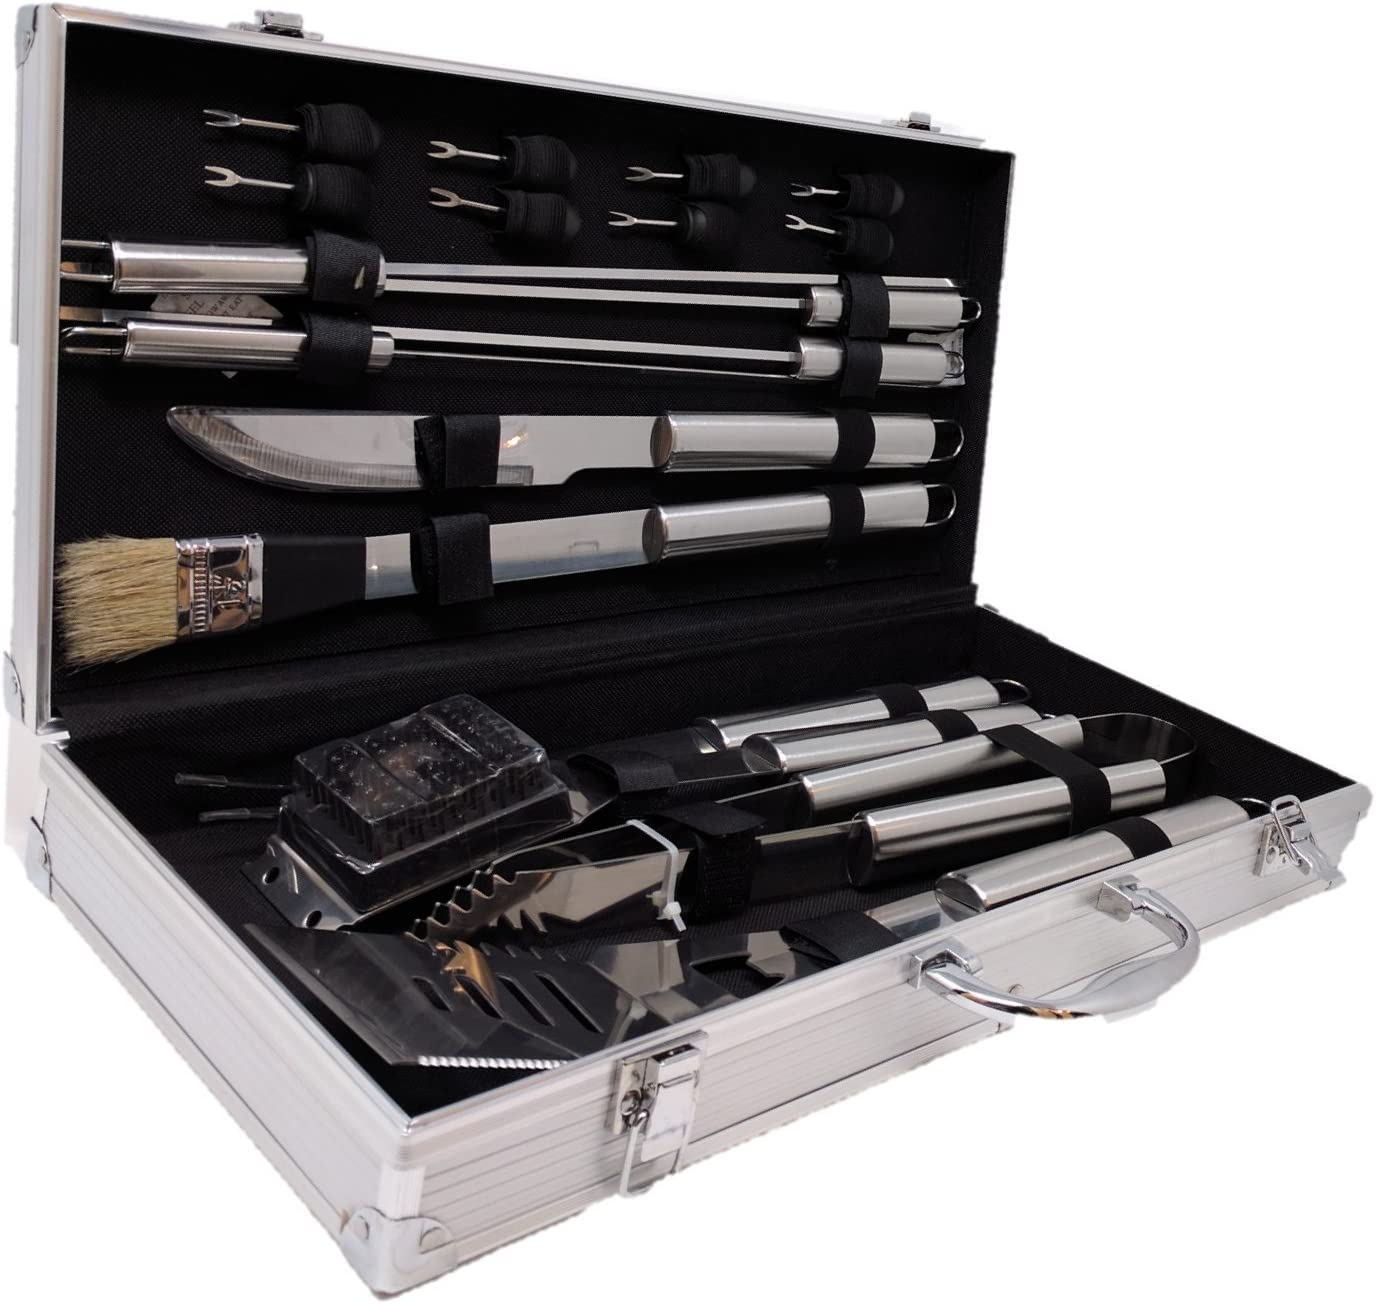 BBQ Grill Tools Set with 18 Barbecue Accessories – Stainless Steel Utensils with Aluminium Case – Complete Outdoor Grilling Kit for Dad